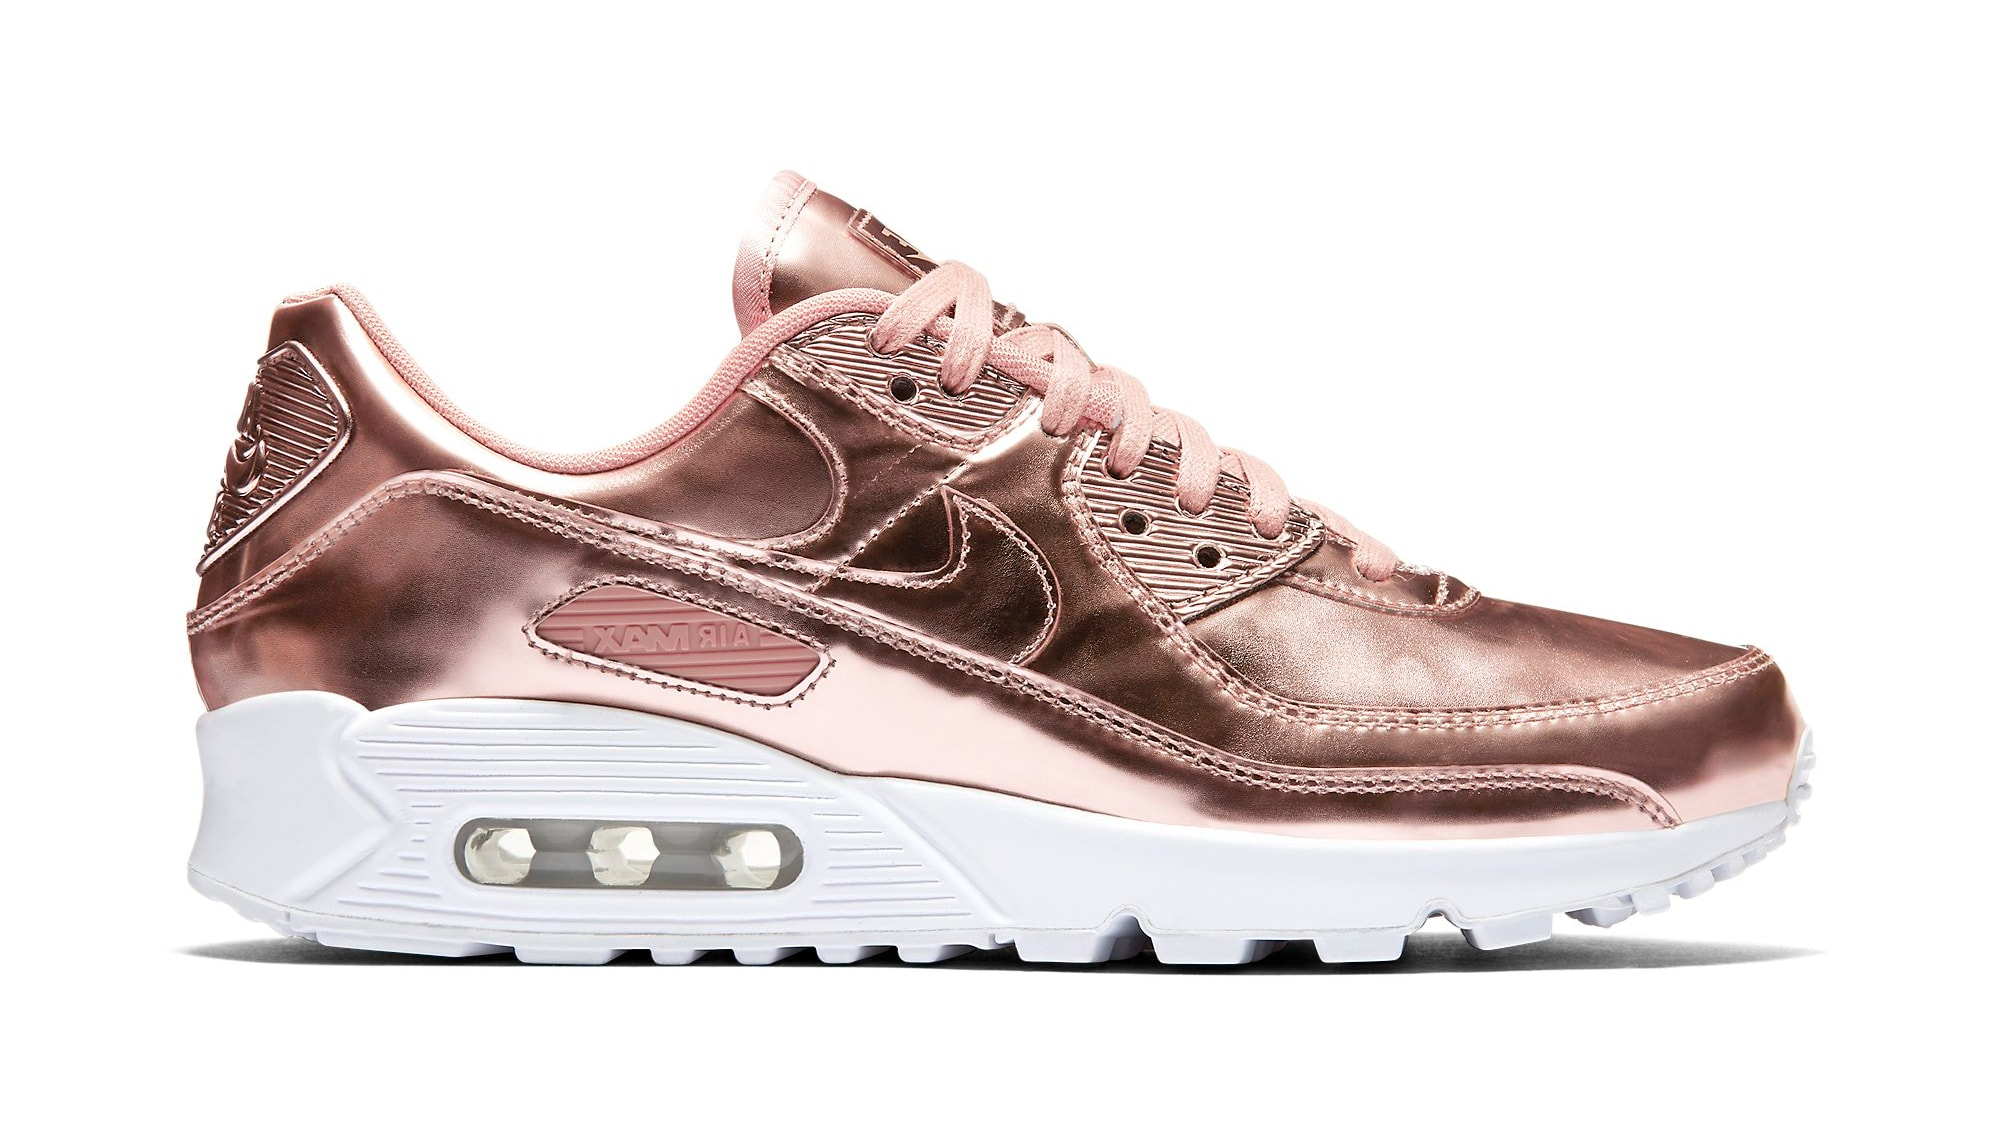 nike-air-max-90-metallic-pack-rose-gold-cq6639-600-release-date